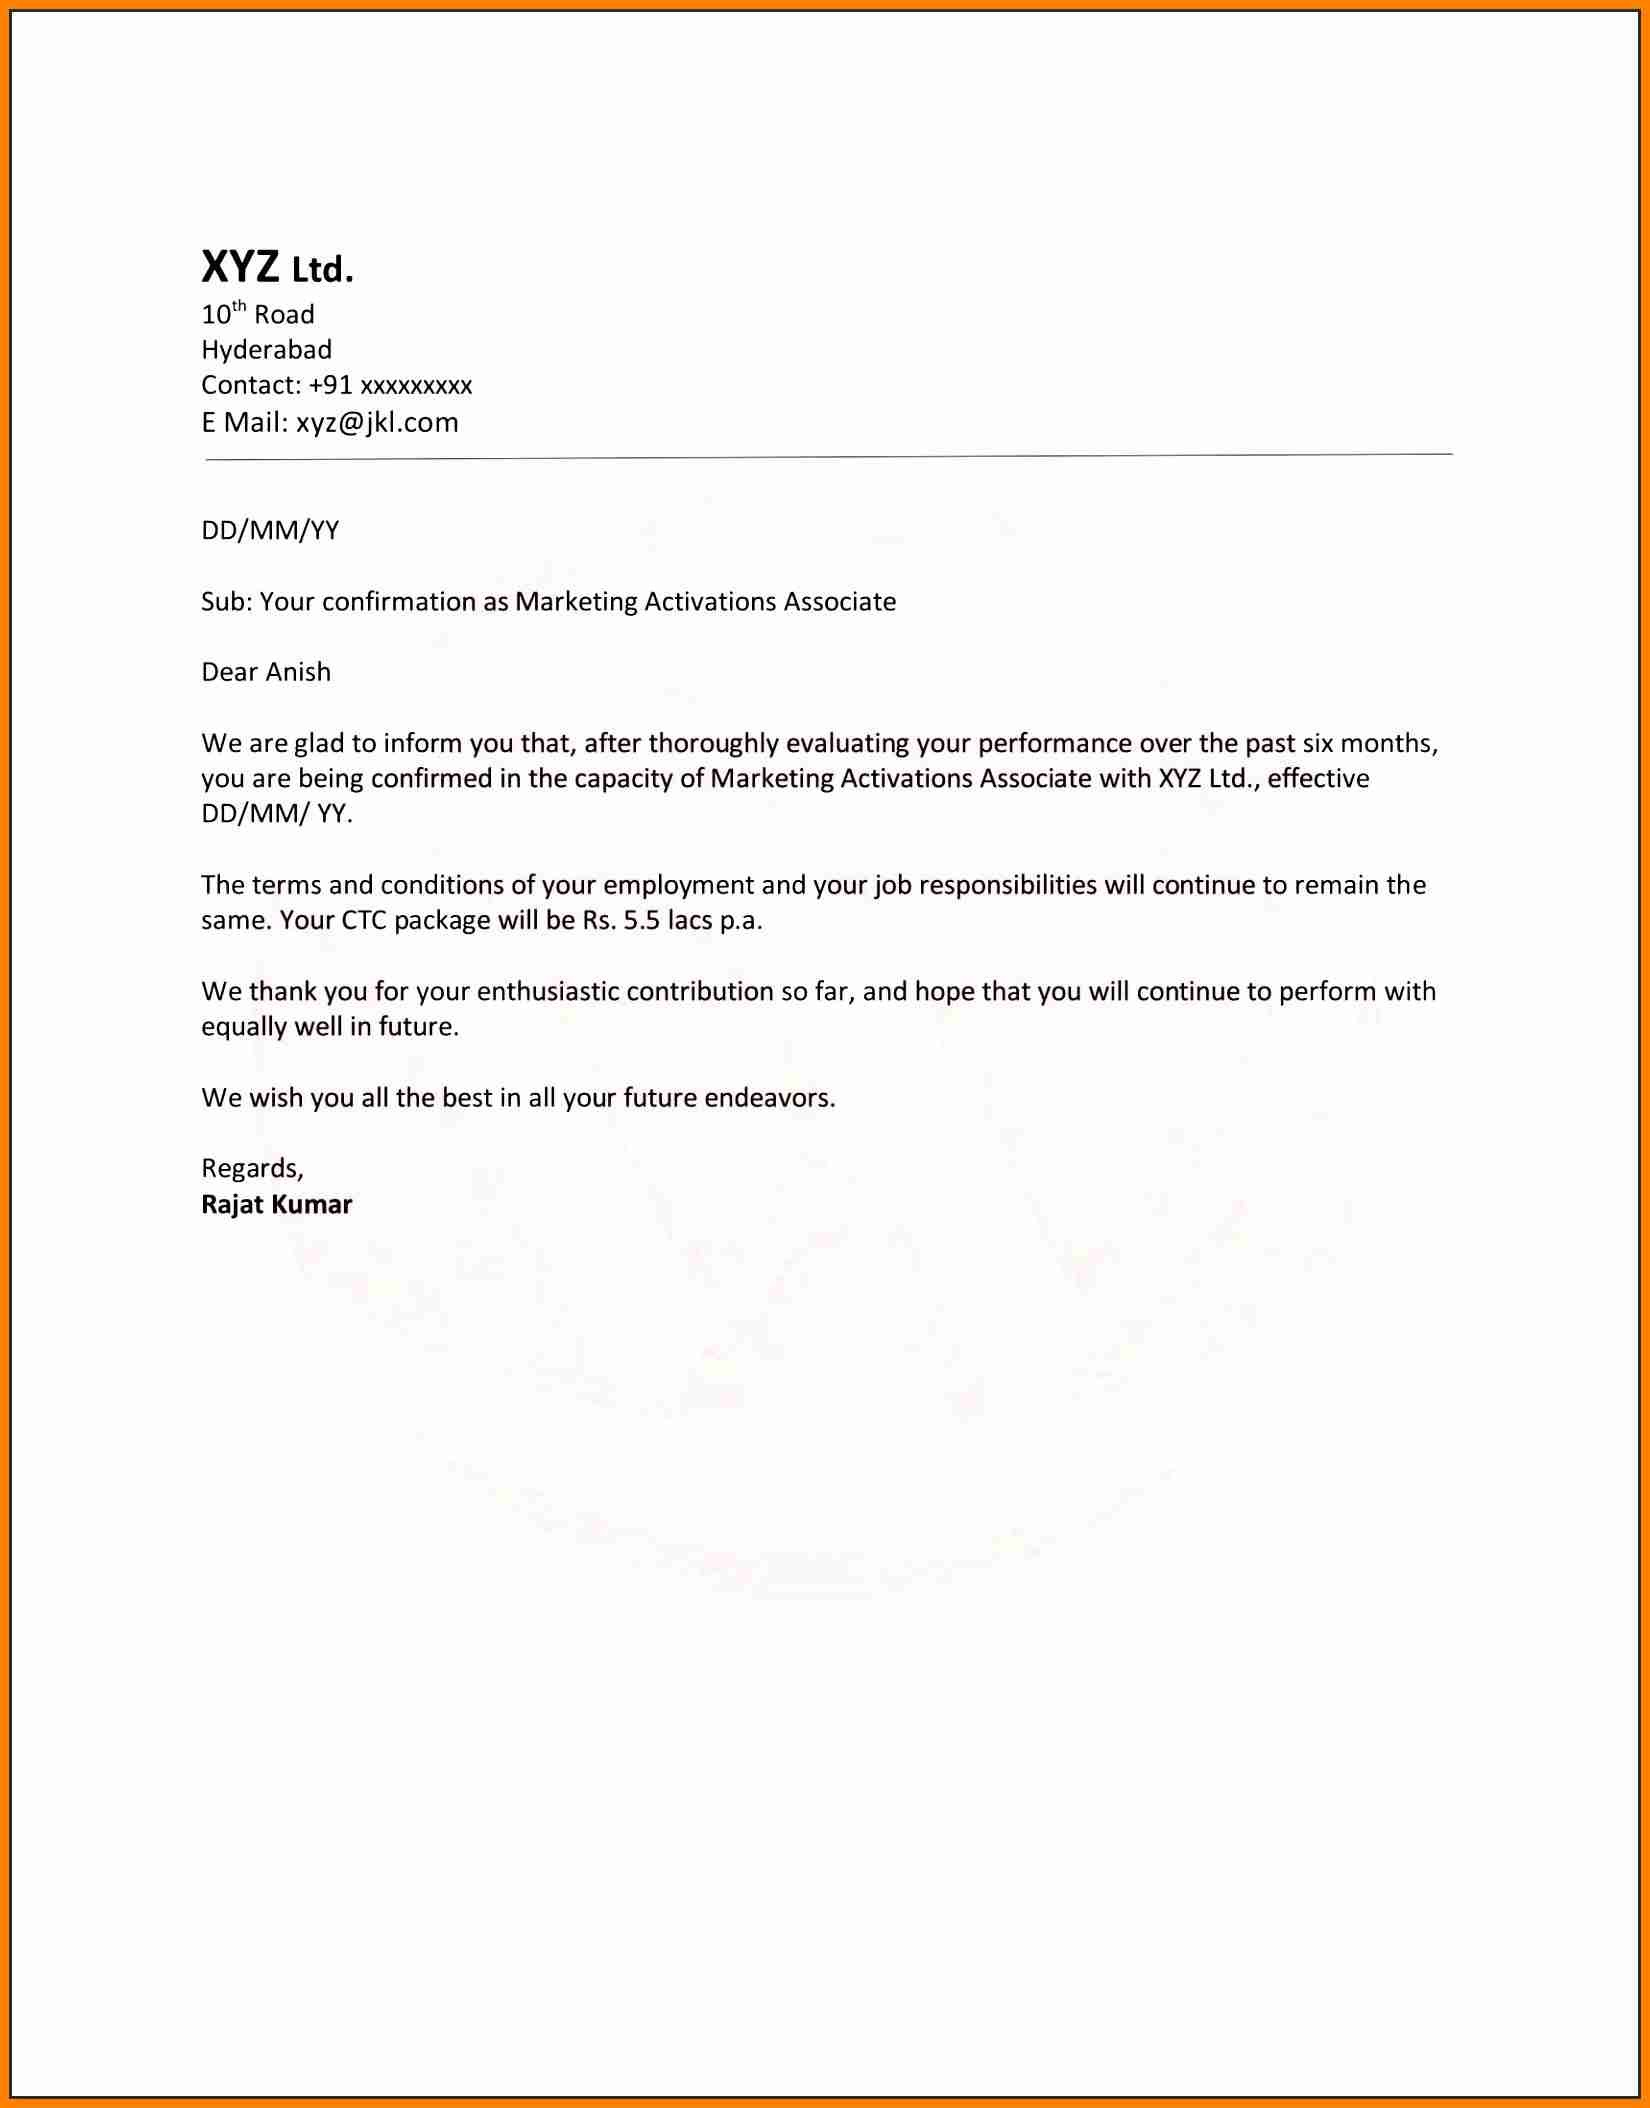 Employment Confirmation Letter Template Doc - Job Confirmation Letter New Confirmation Letter format Word Document